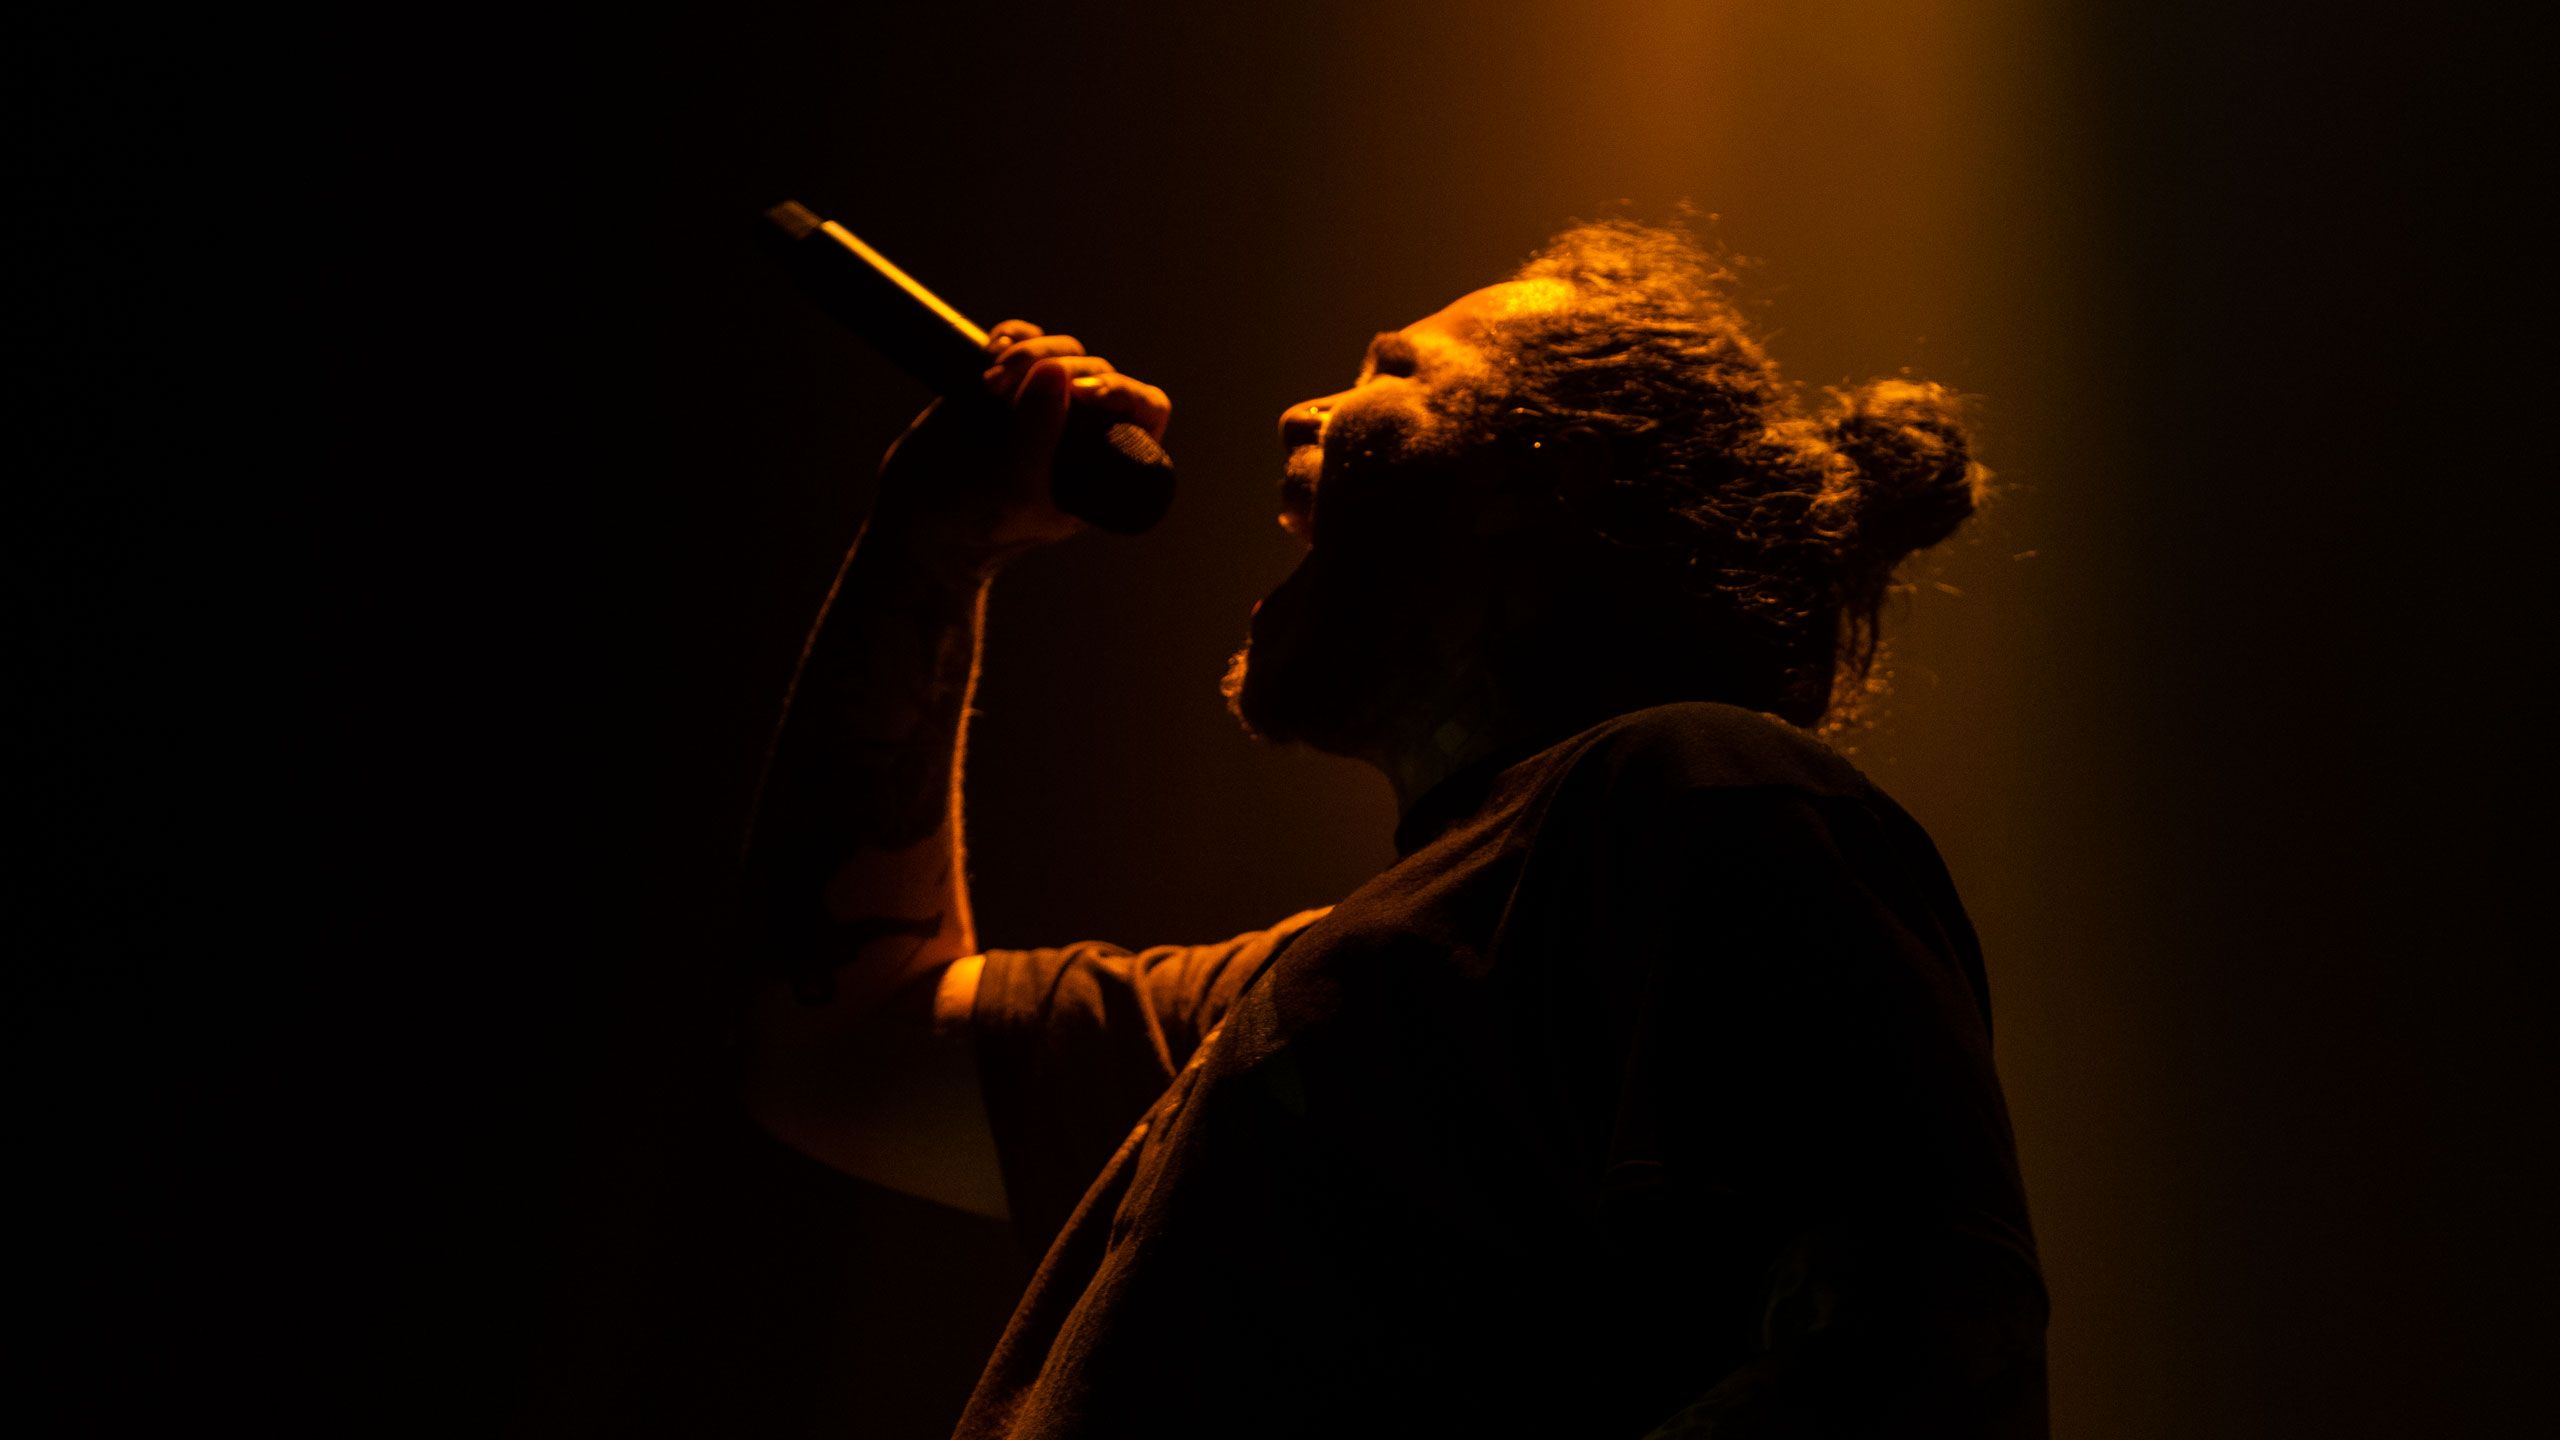 Post Malone Wallpapers Top Free Post Malone Backgrounds Wallpaperaccess